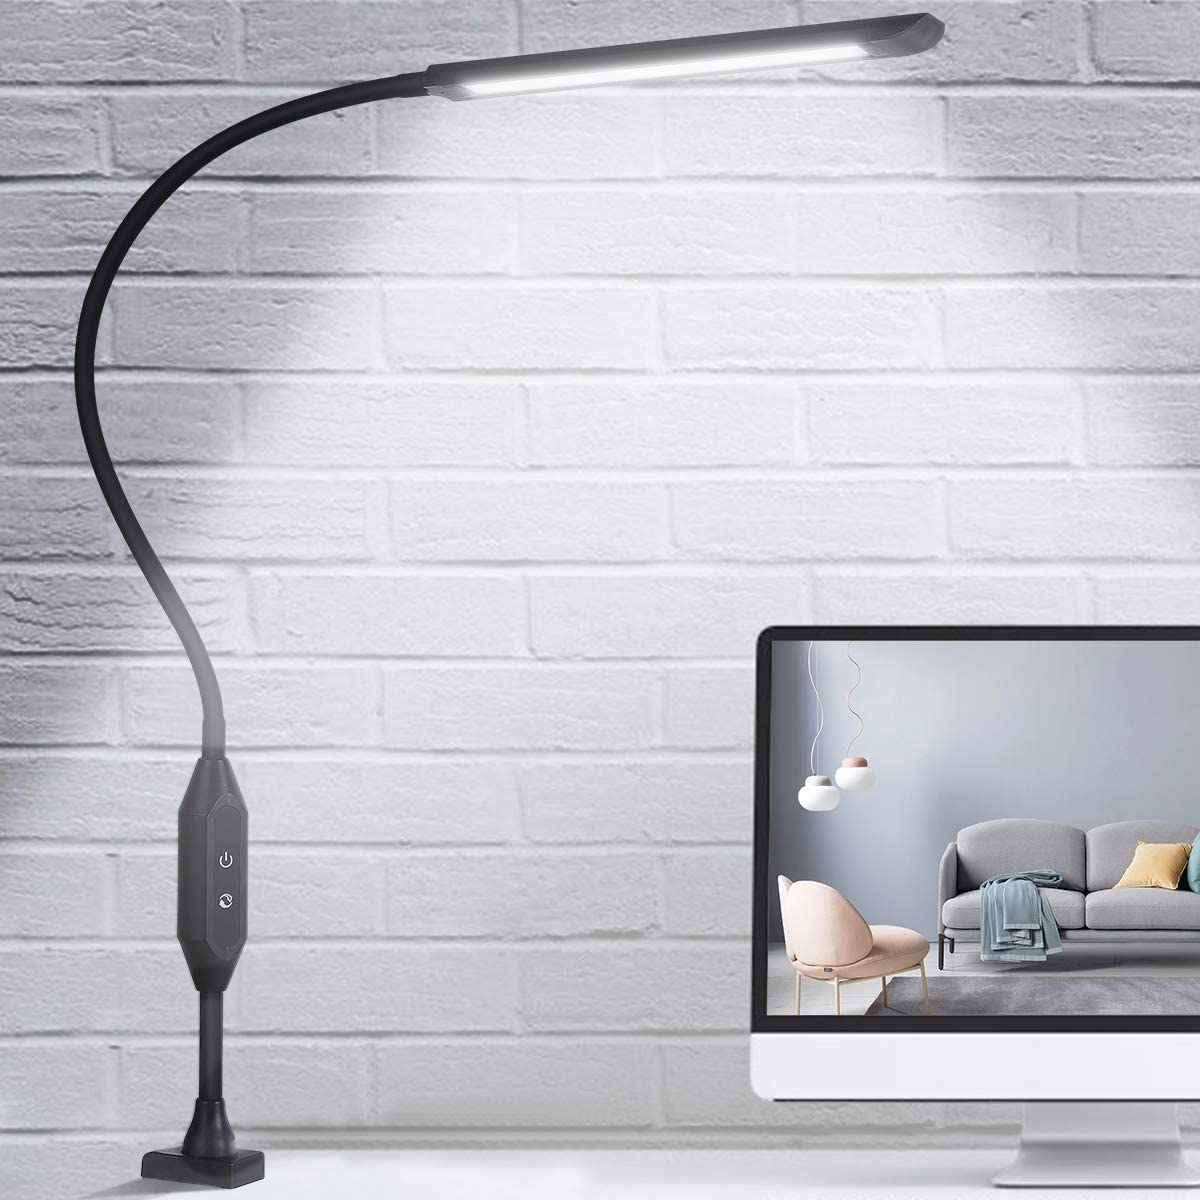 KEDSUM LED Desk Lamp with Clamp, Flexible Gooseneck Clamp Lamp with Touch & Remote Control, 10W Eye-Care Architect Desk Lamp for Office/Home, with 5 Color Modes, 5-Level Brightness & Memory Function